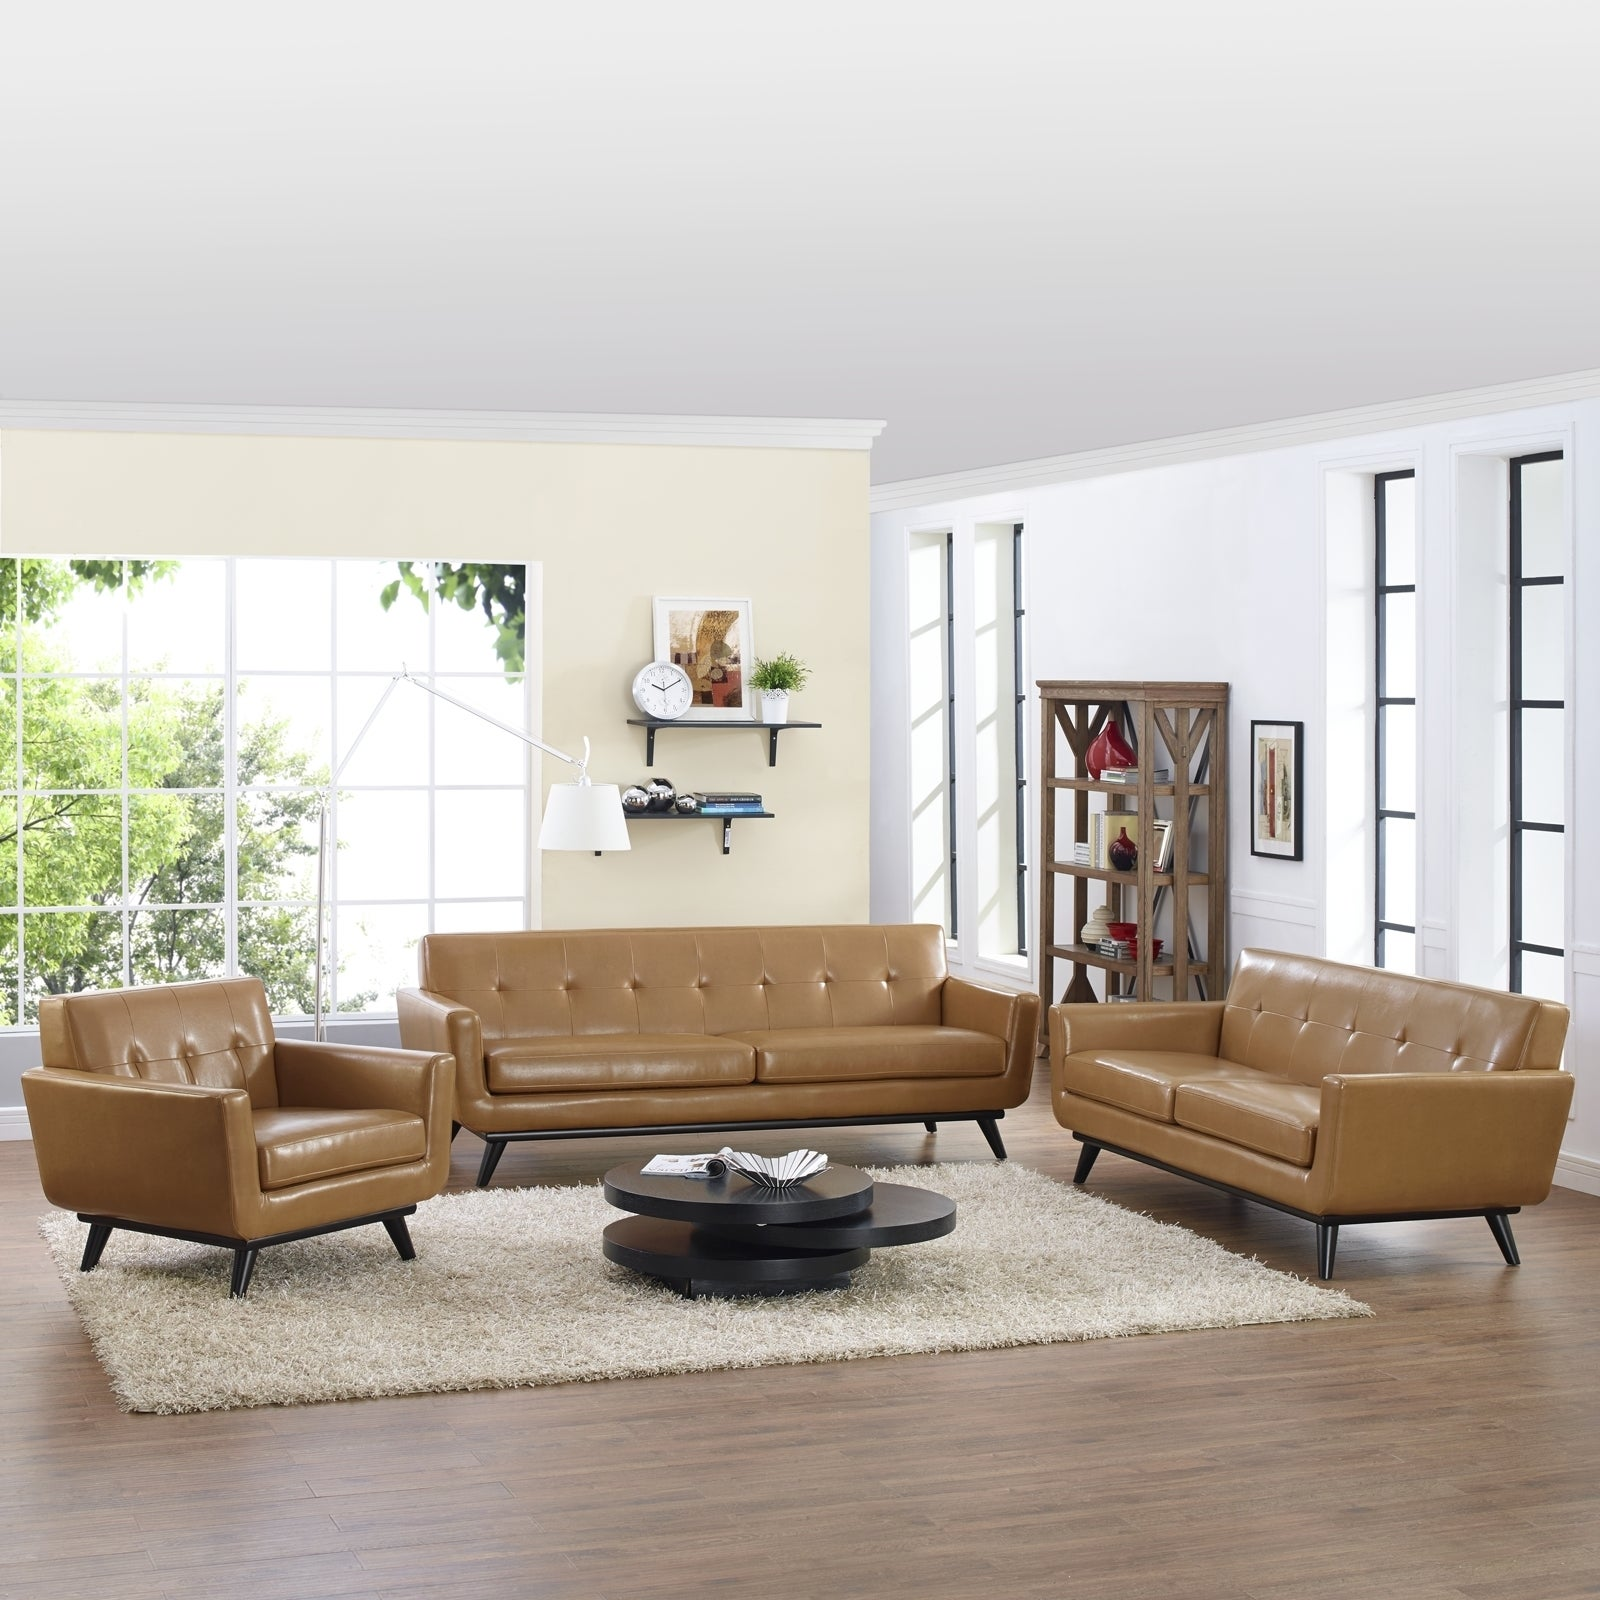 Absorb 3-piece Leather Living Room Set - 3piece - Free Shipping ...